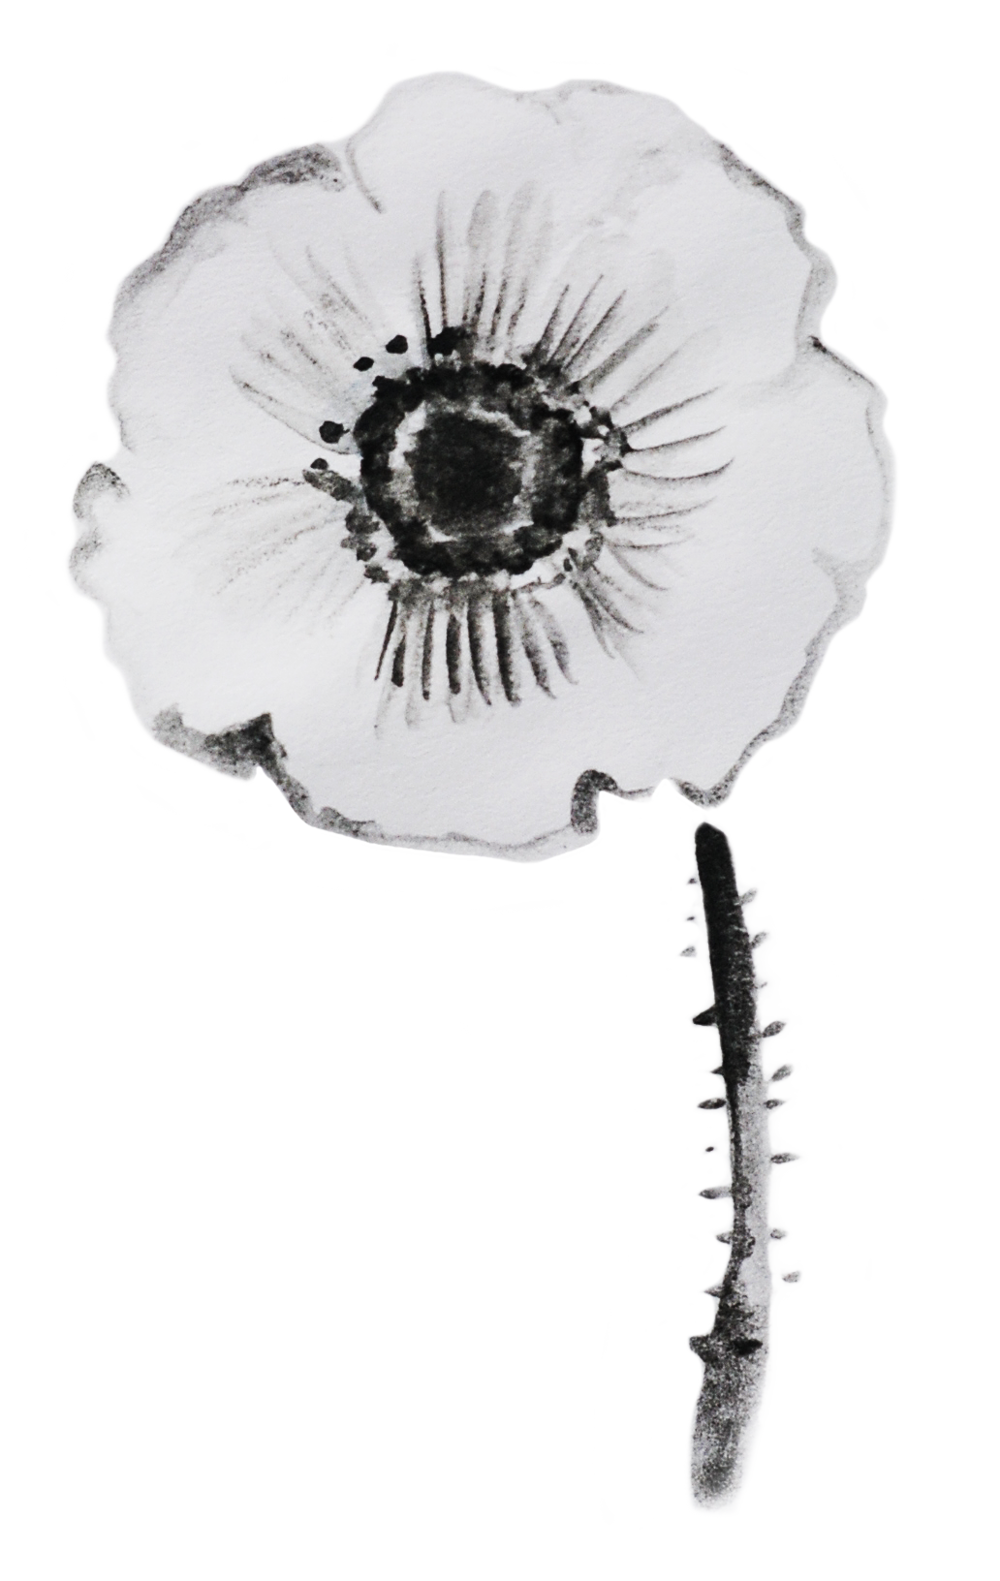 anemone-transp.png